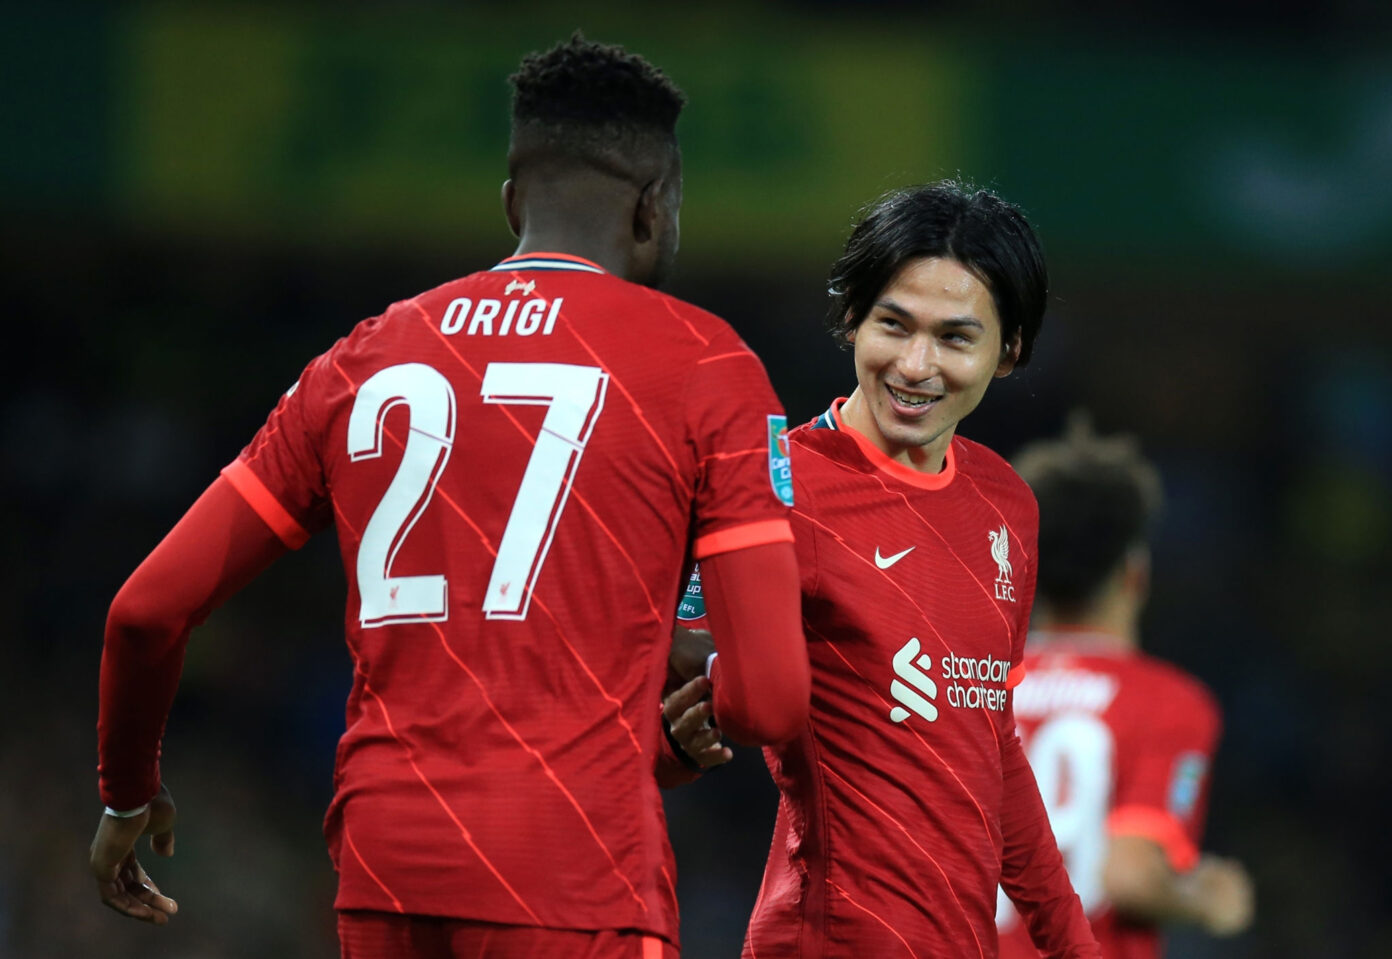 Norwich City 0-3 Liverpool - Minamino double eases Reds into fourth round